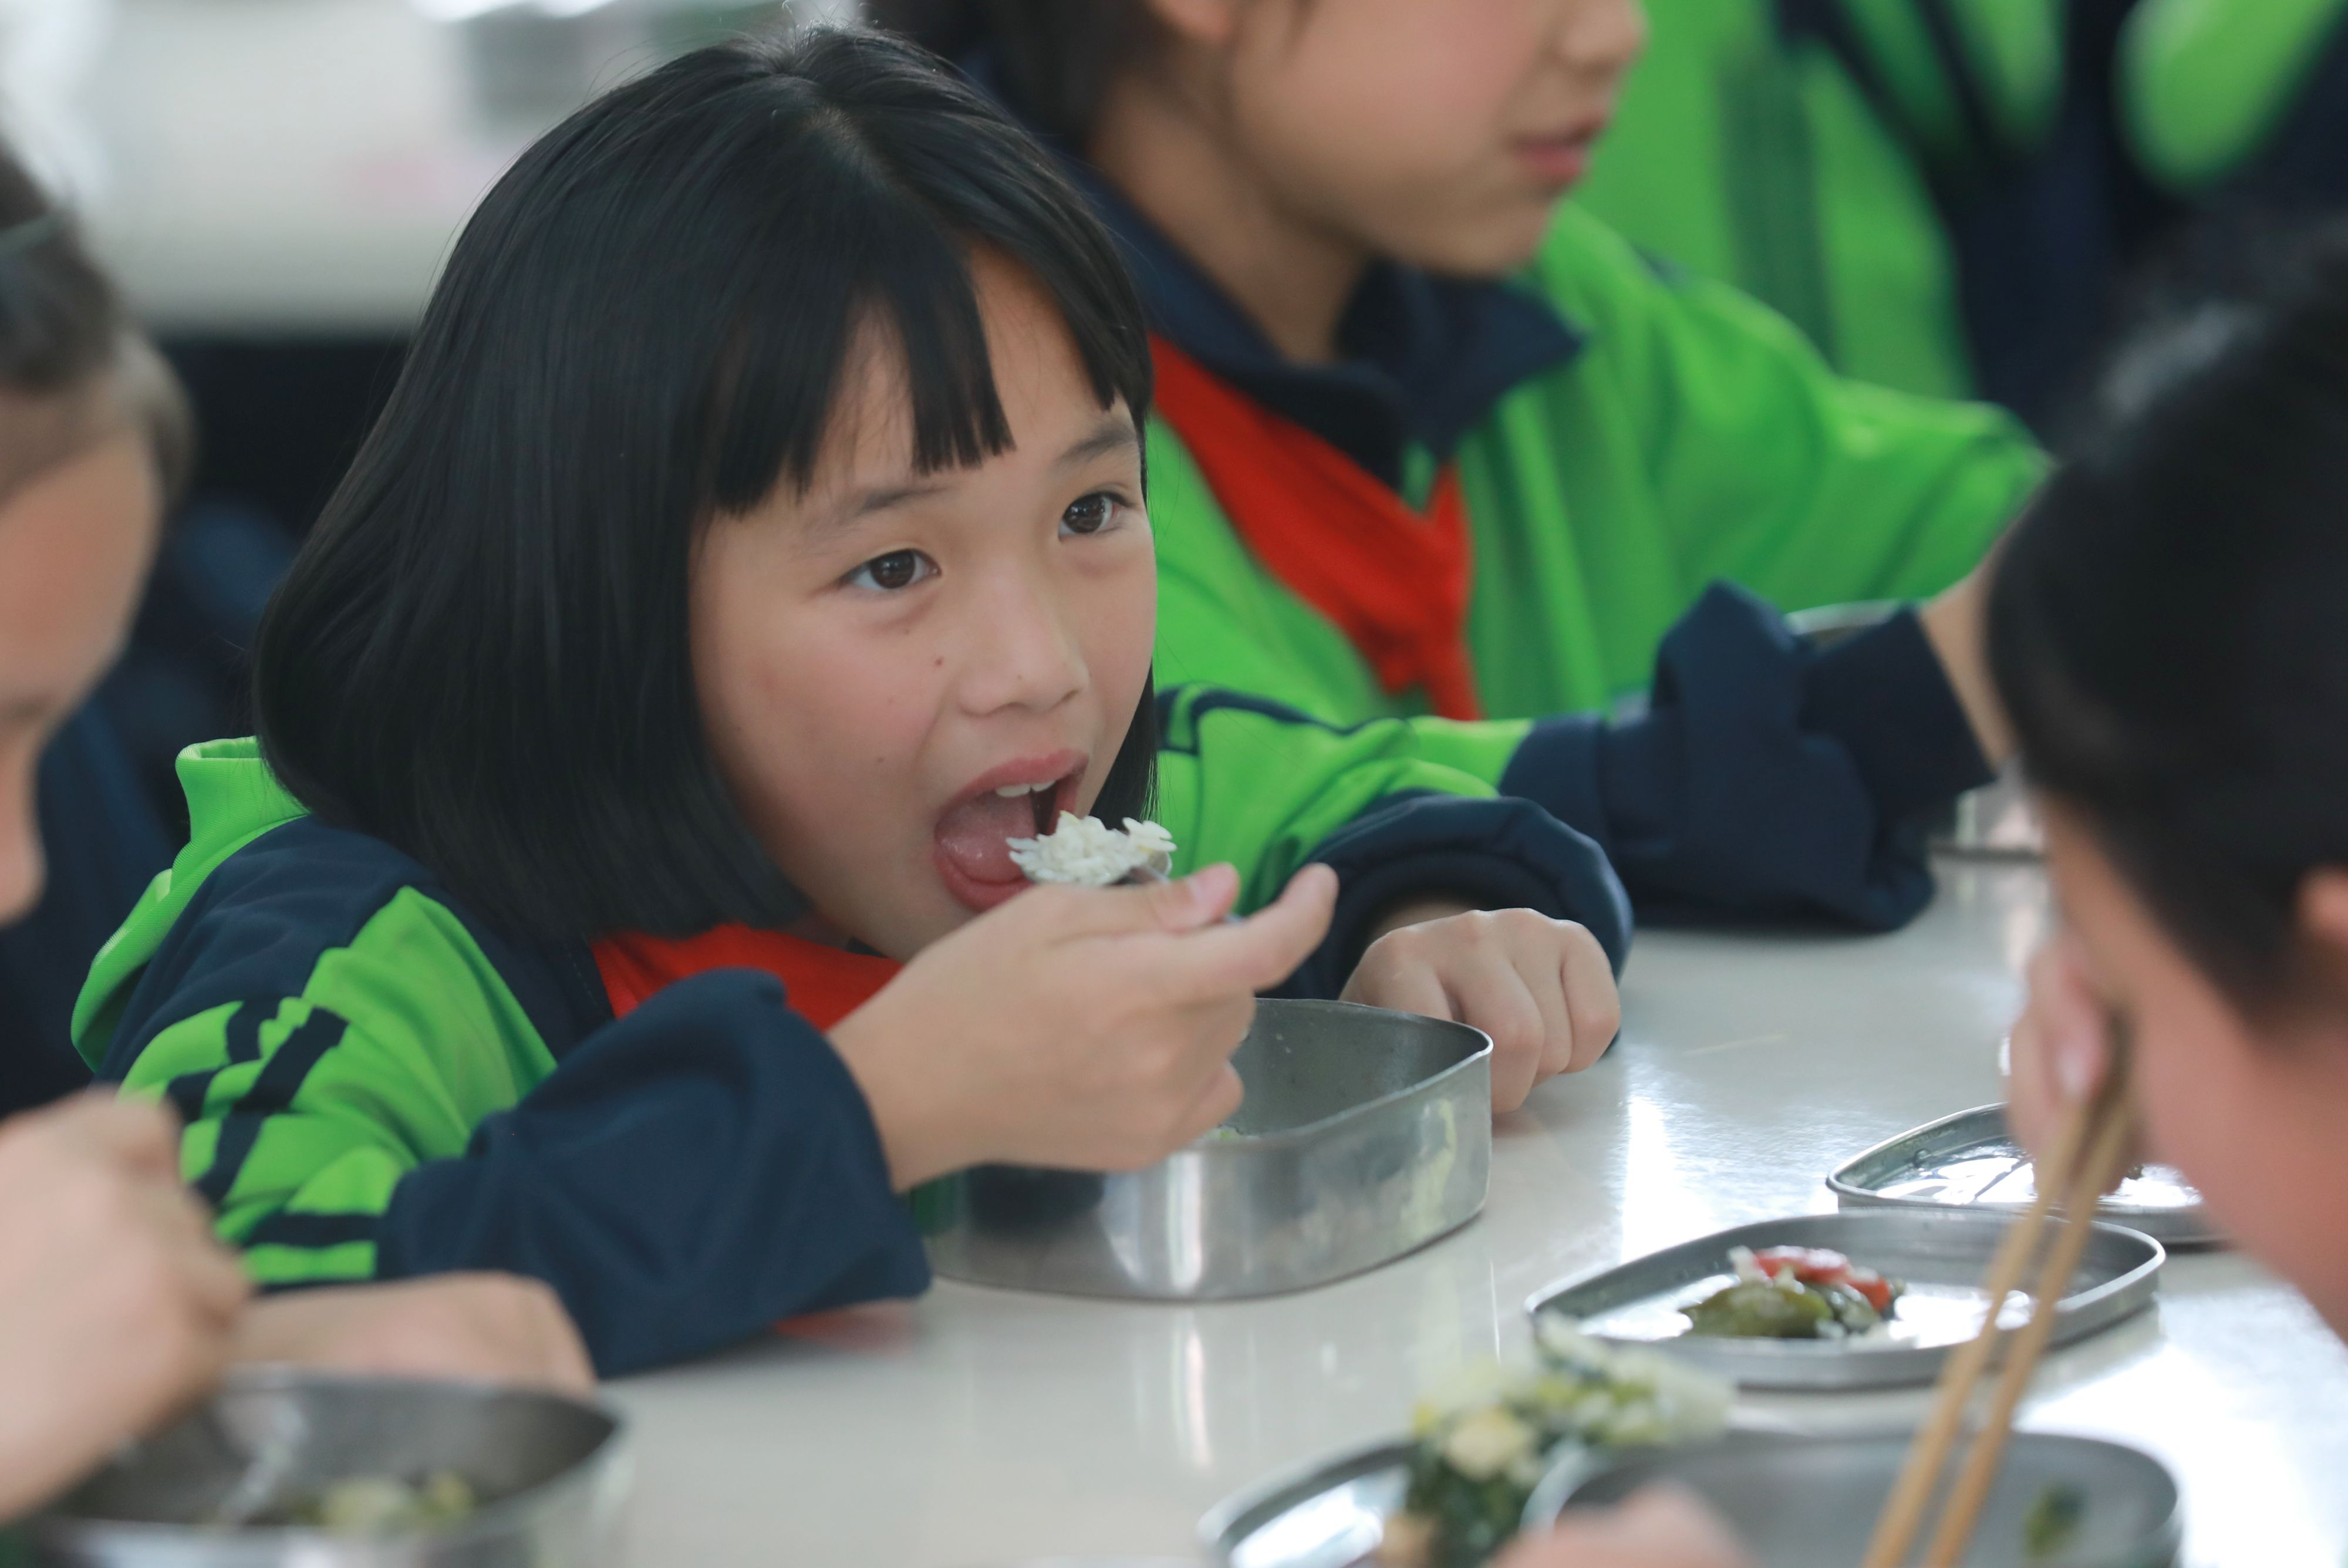 China tightens scrutiny over school food safety